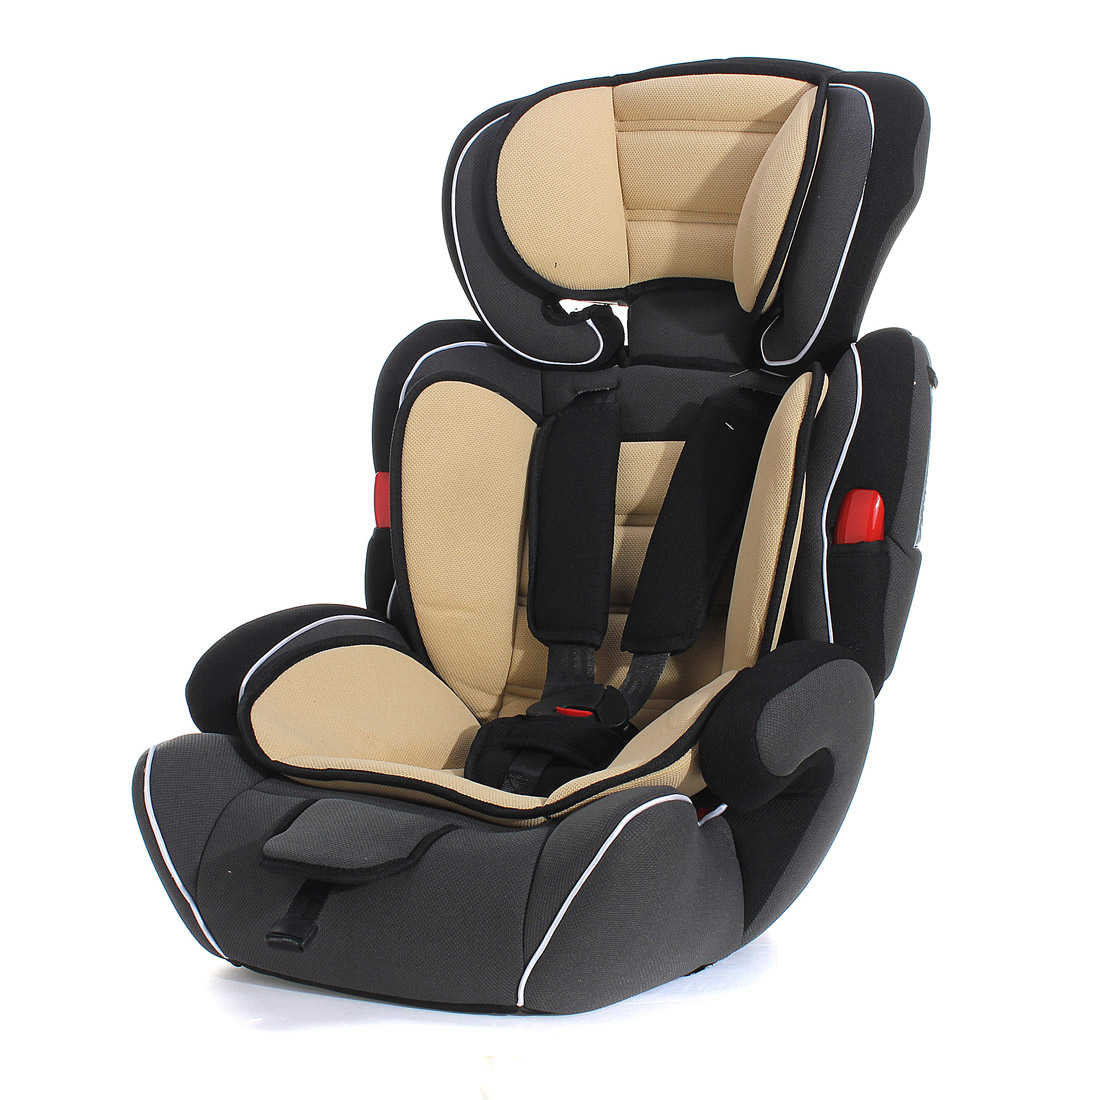 Brown Convertible Baby Kid Children Car Safety Seat & Booster Seat Group 1/2/3 9-36 KG Series A